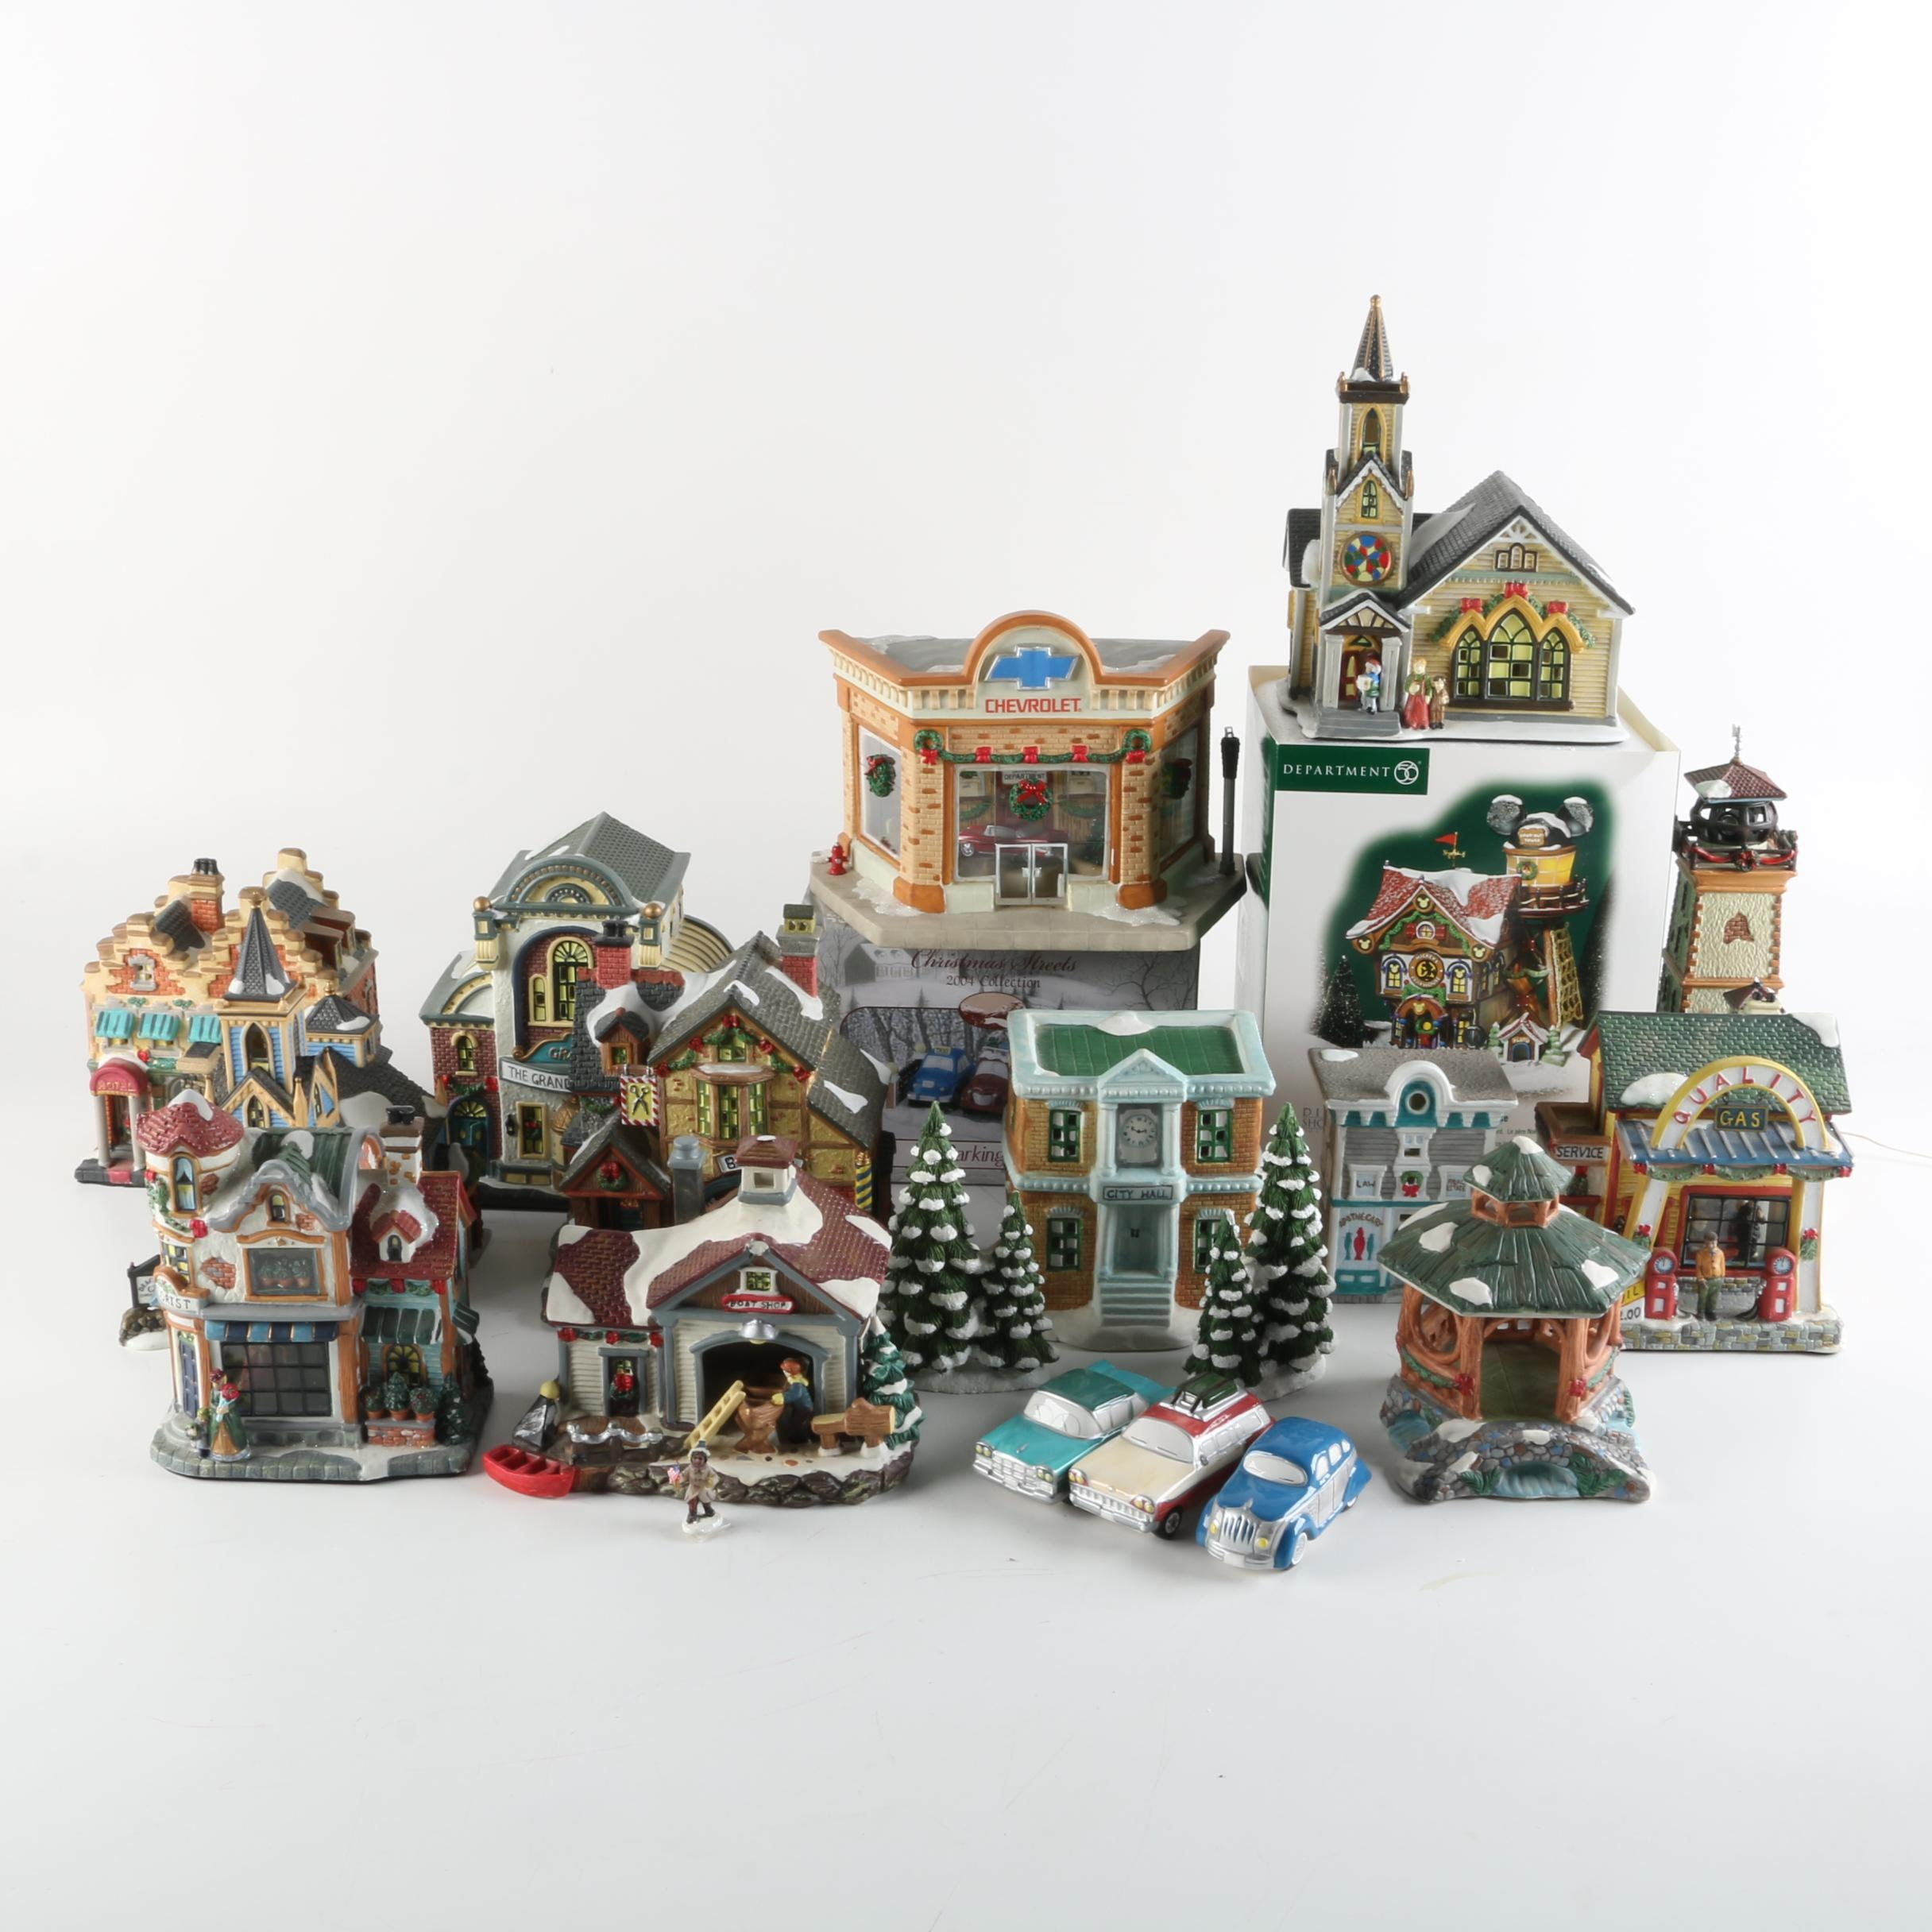 Winter Village Buildings and Accessories